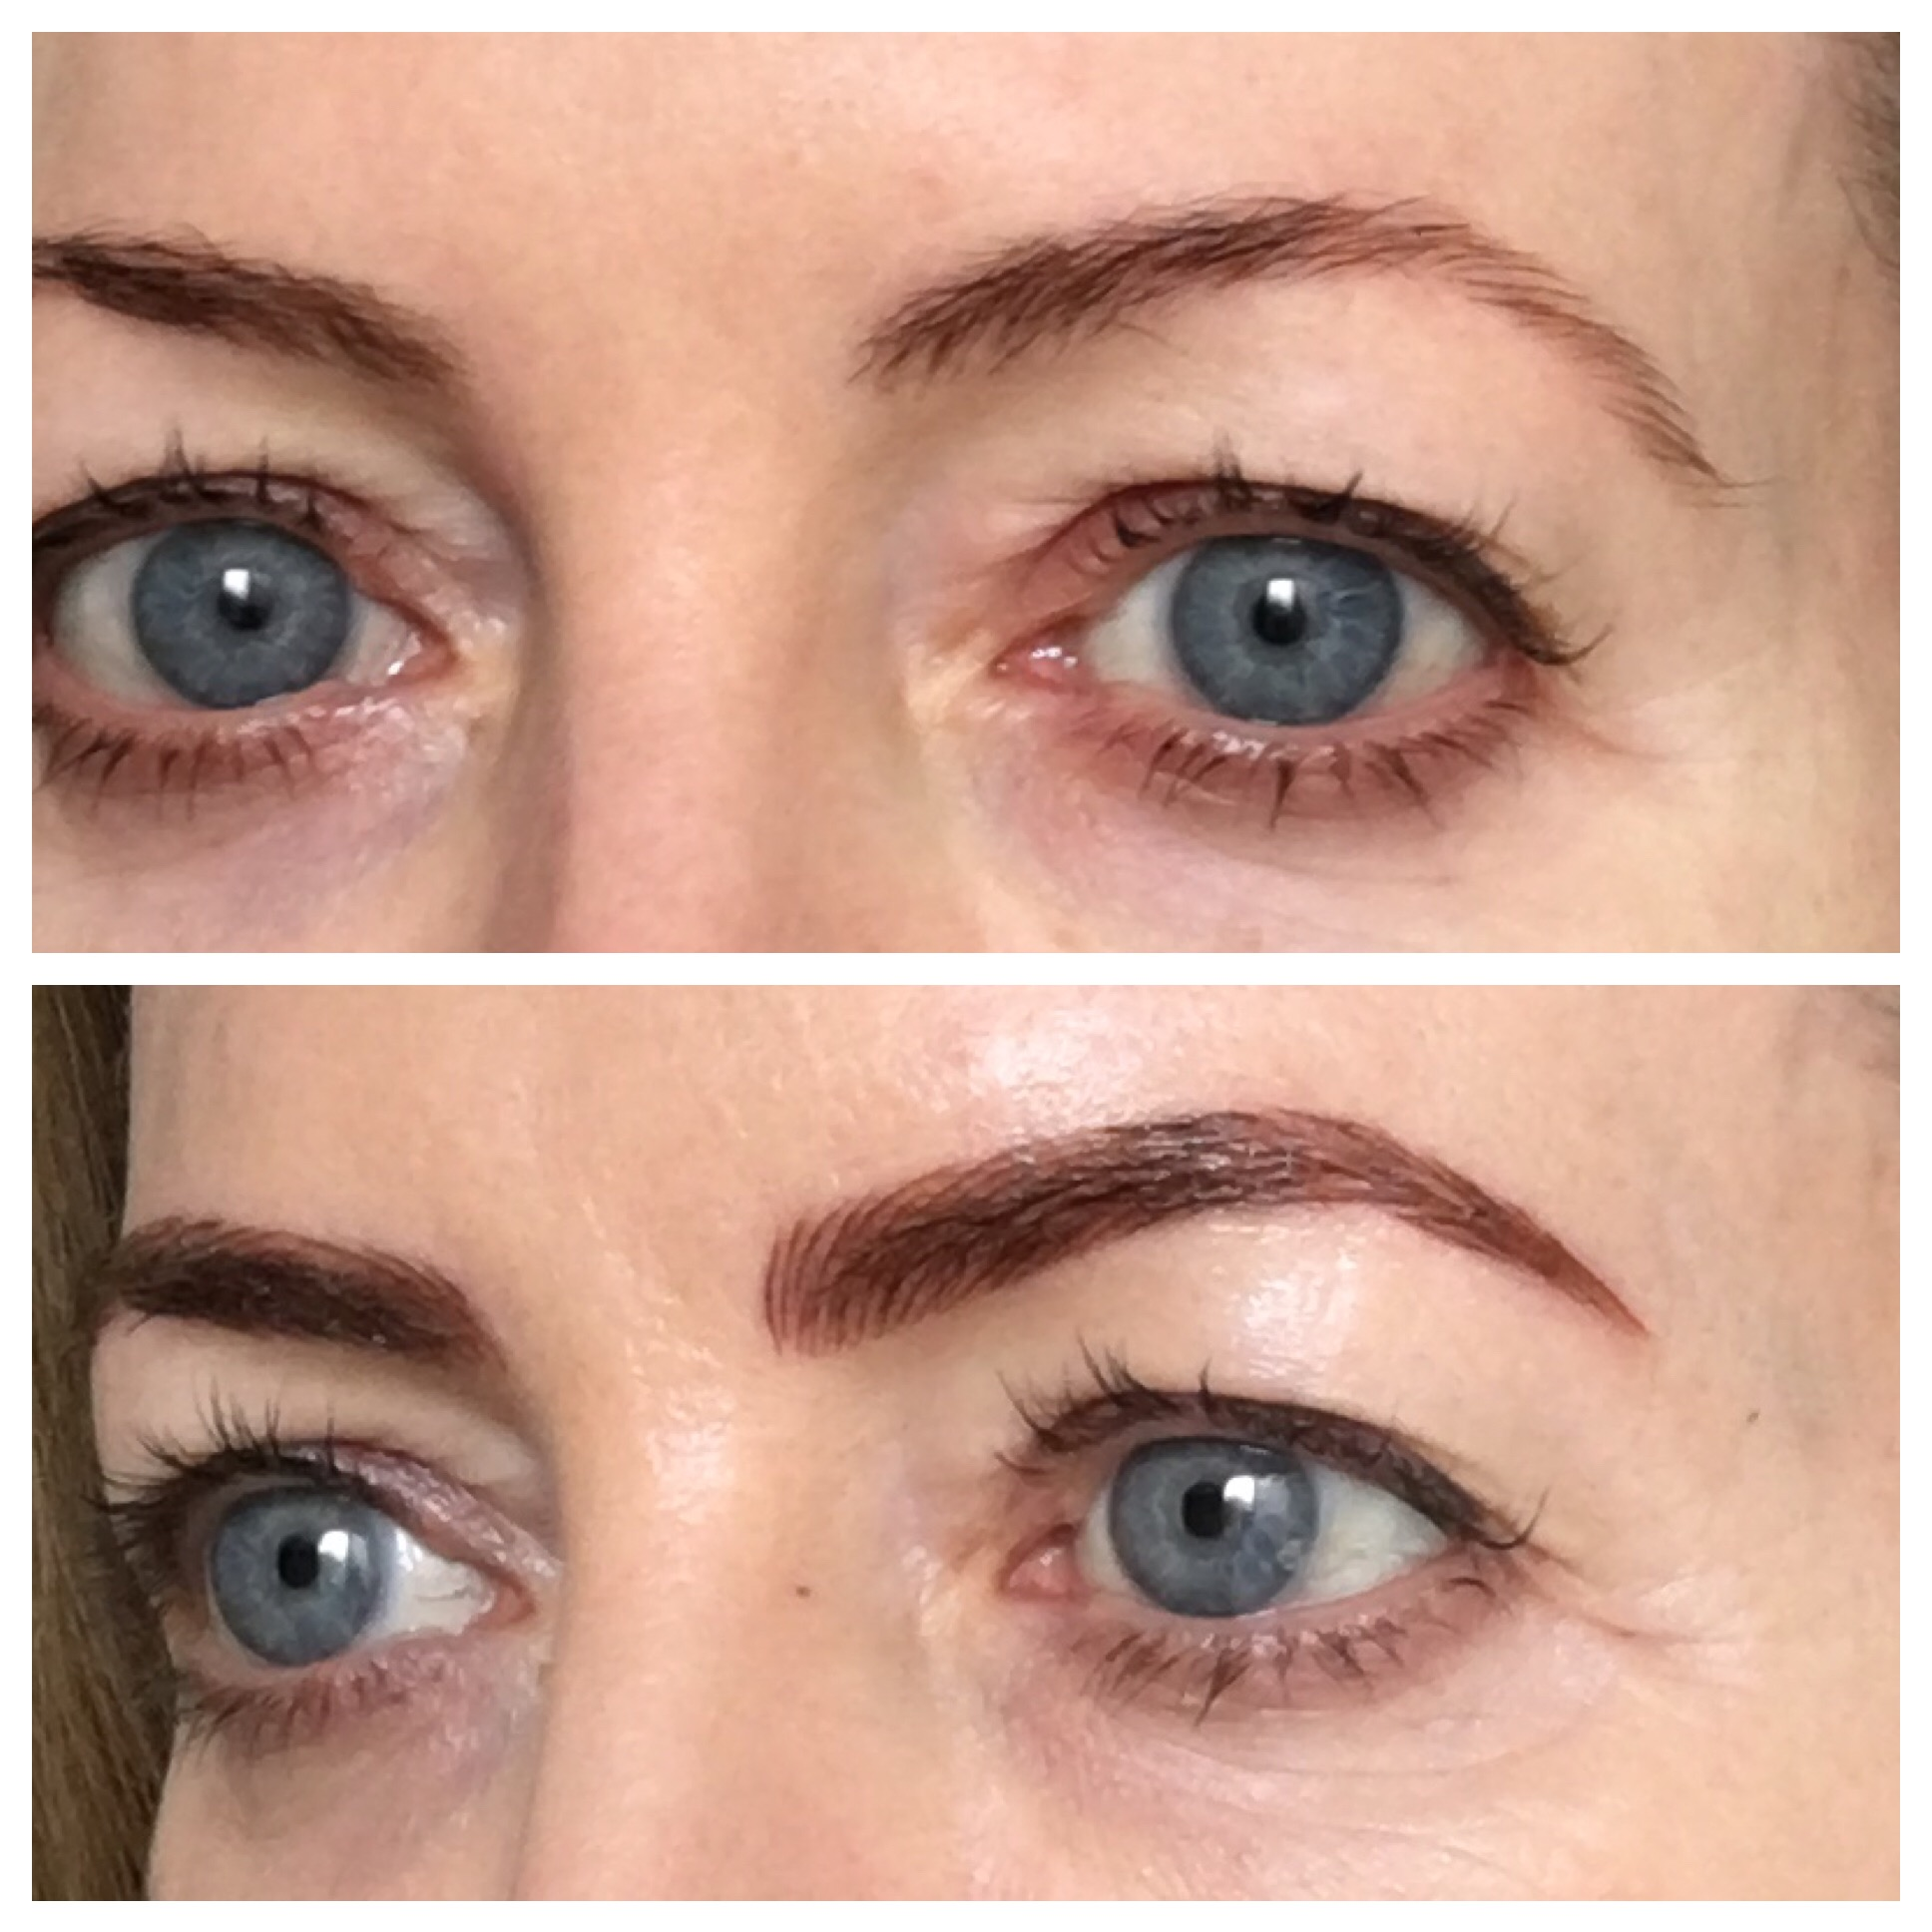 Before and after eyebrow microblading - spot the difference!